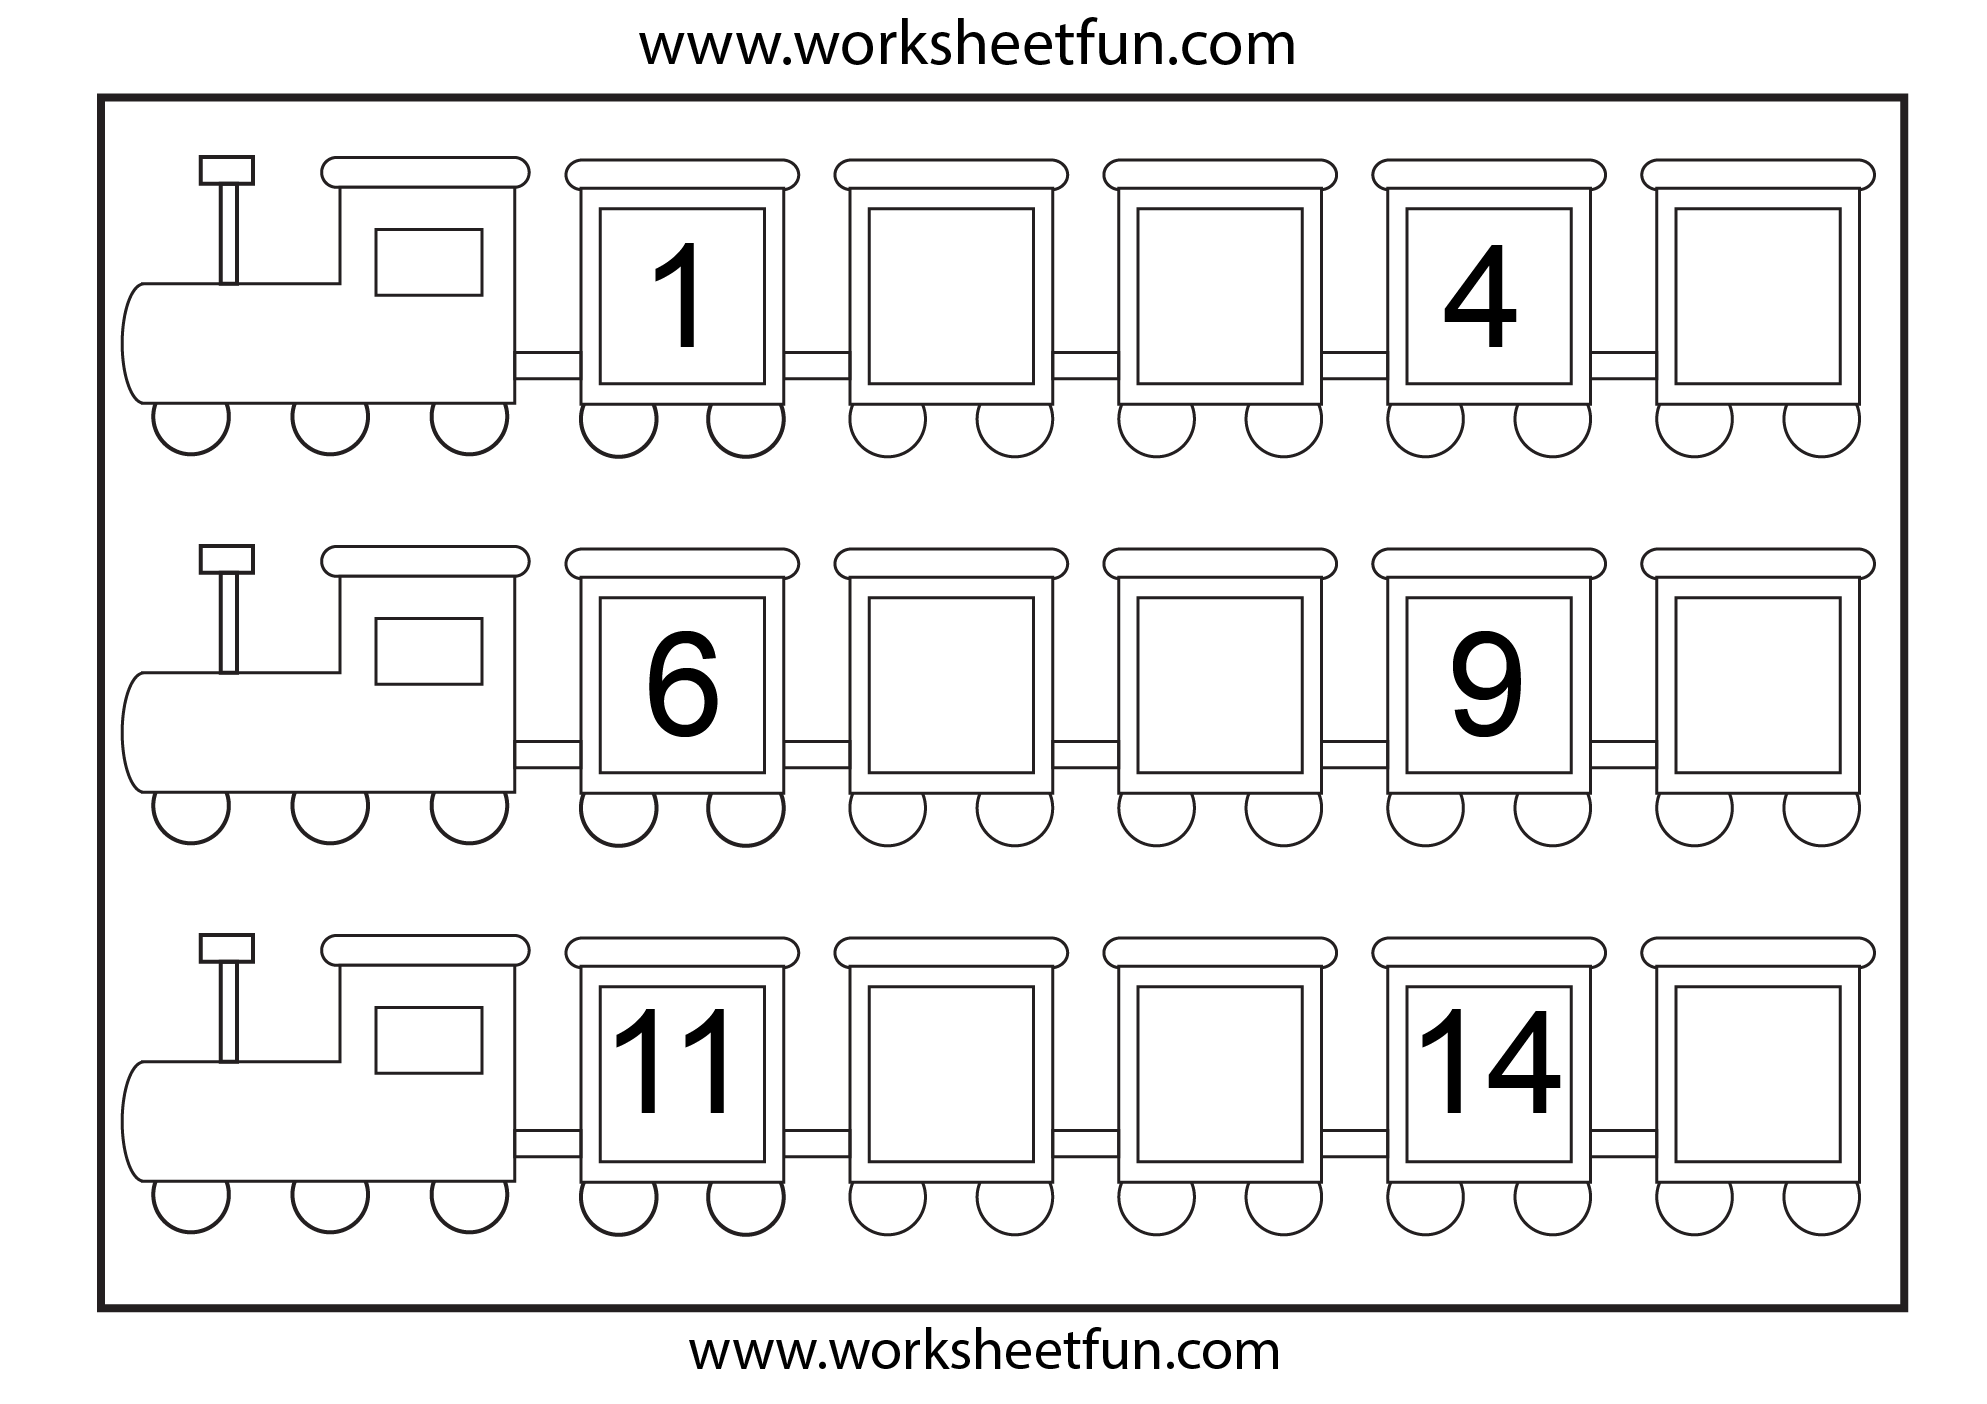 Missing Number Worksheet New 188 Missing Number Worksheets Free